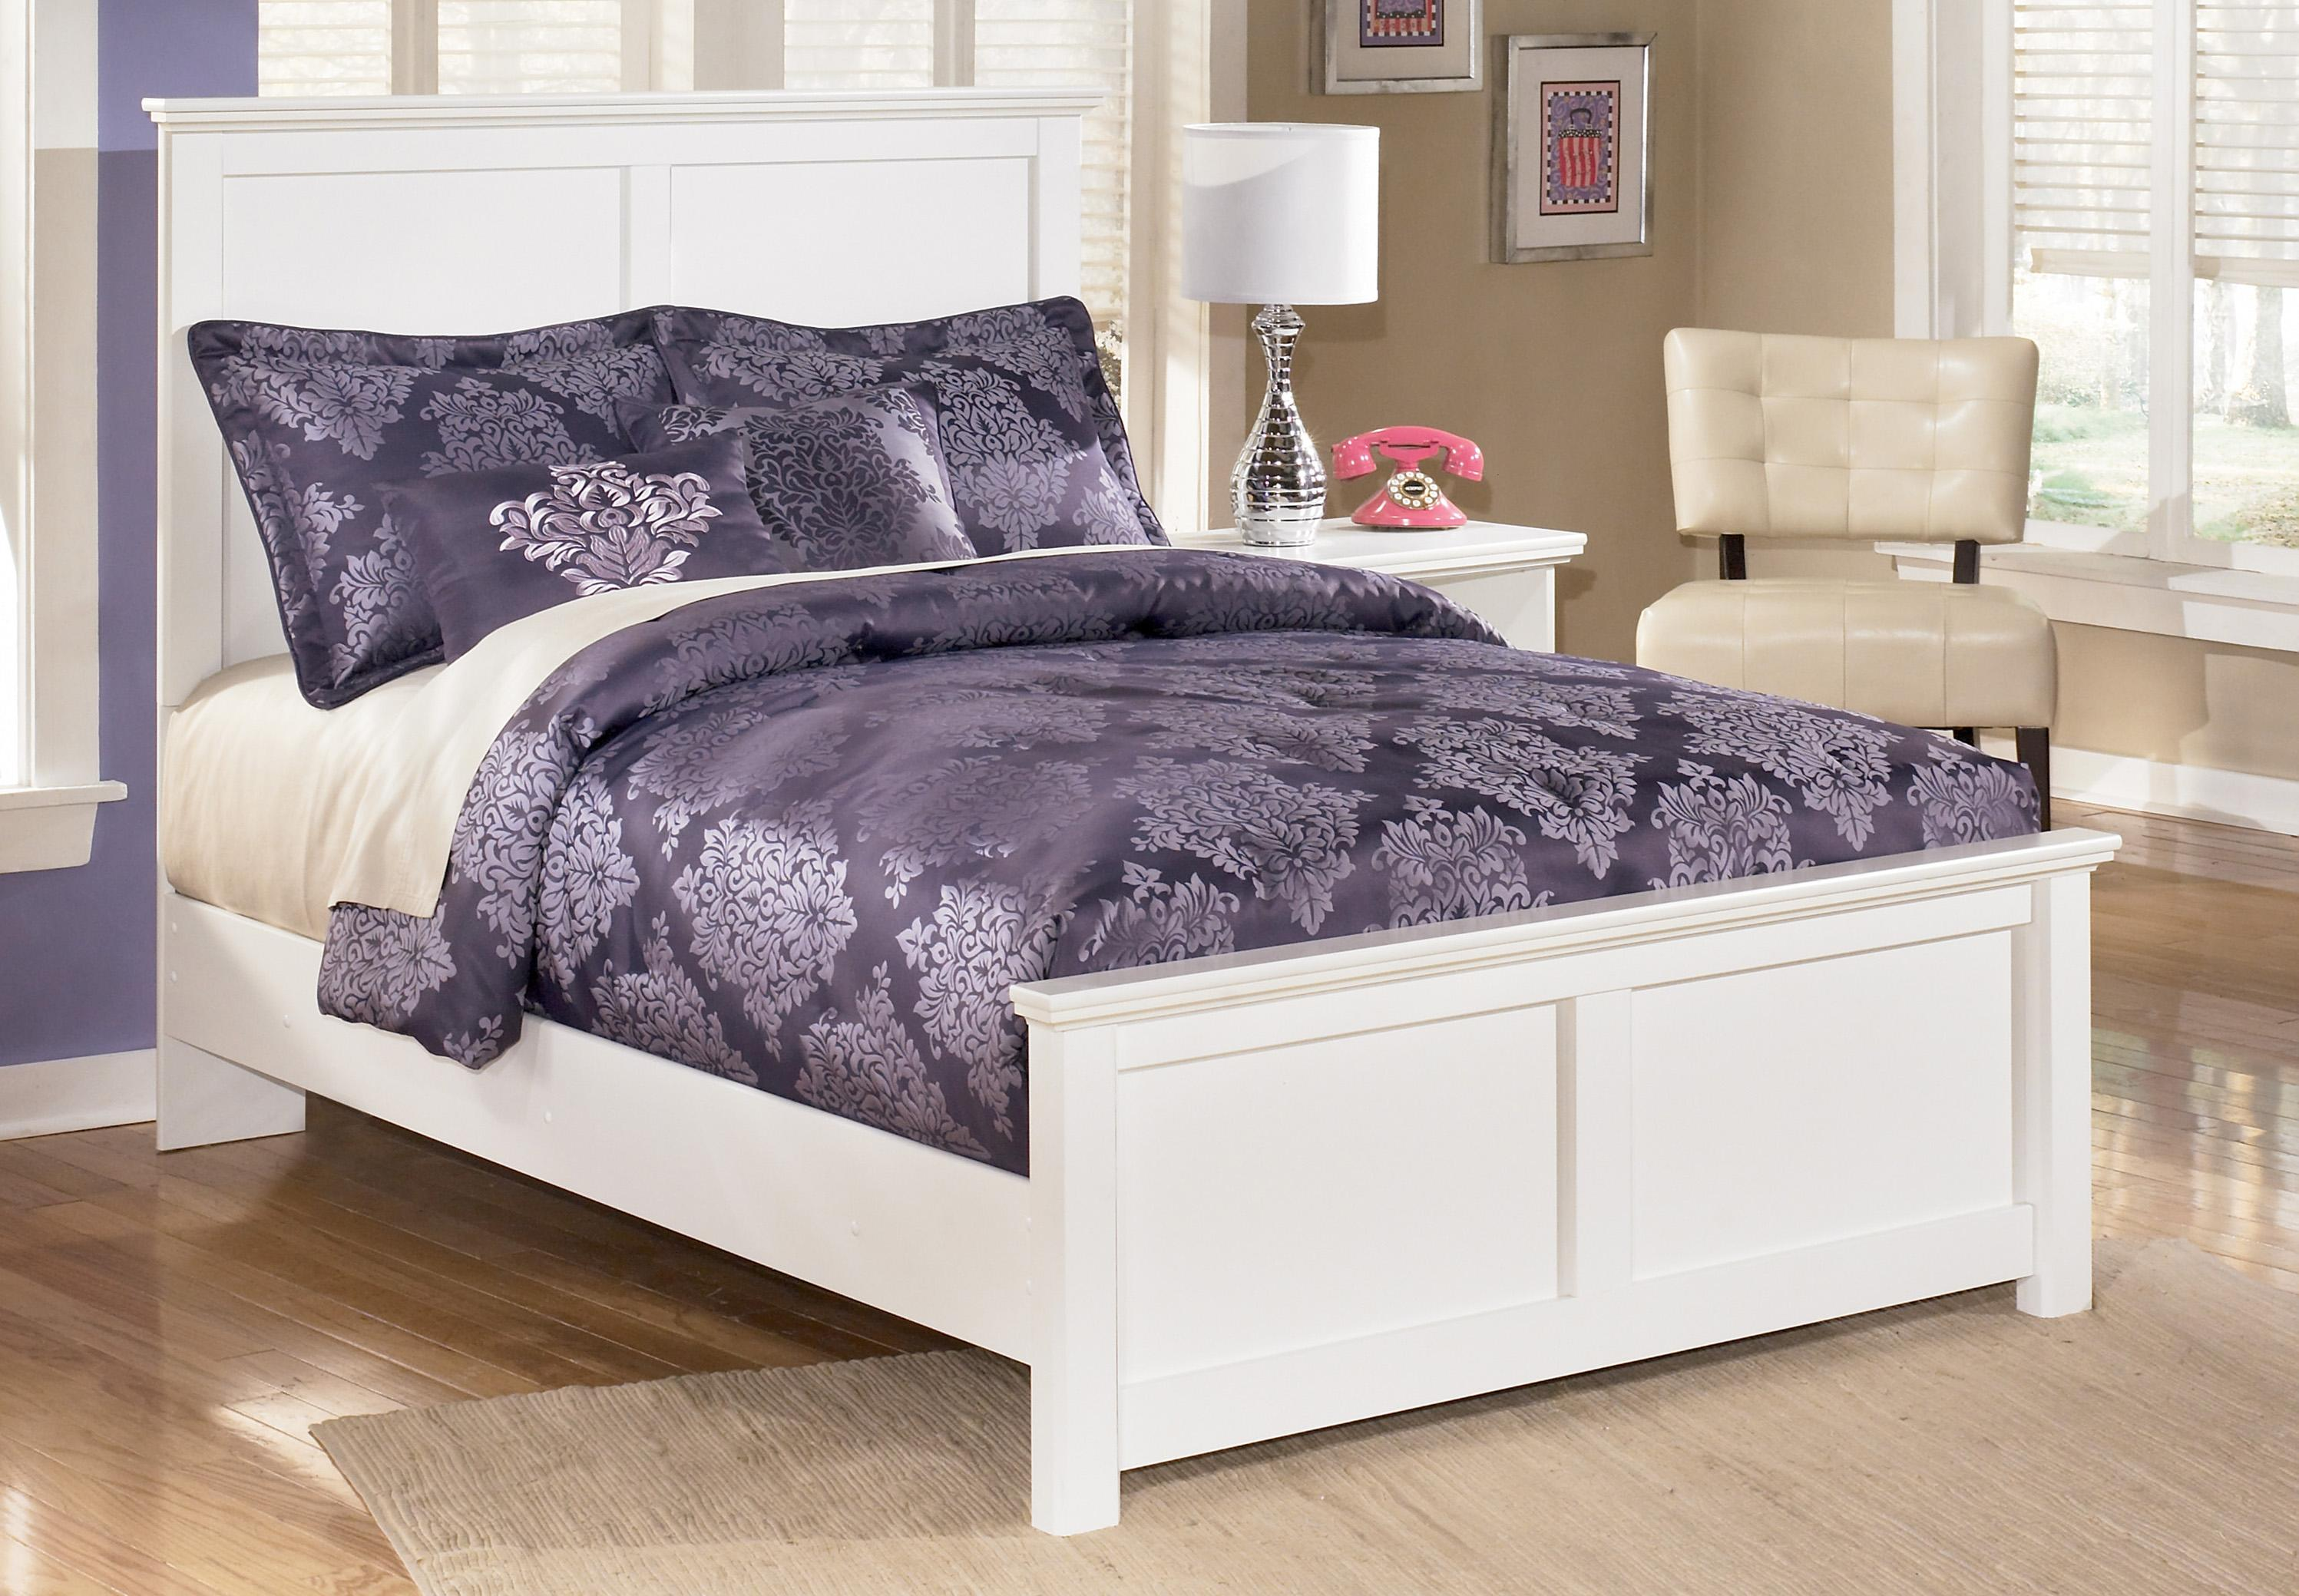 Signature Design by Ashley Bostwick Shoals Full Panel Bed - Item Number: B139-87+84